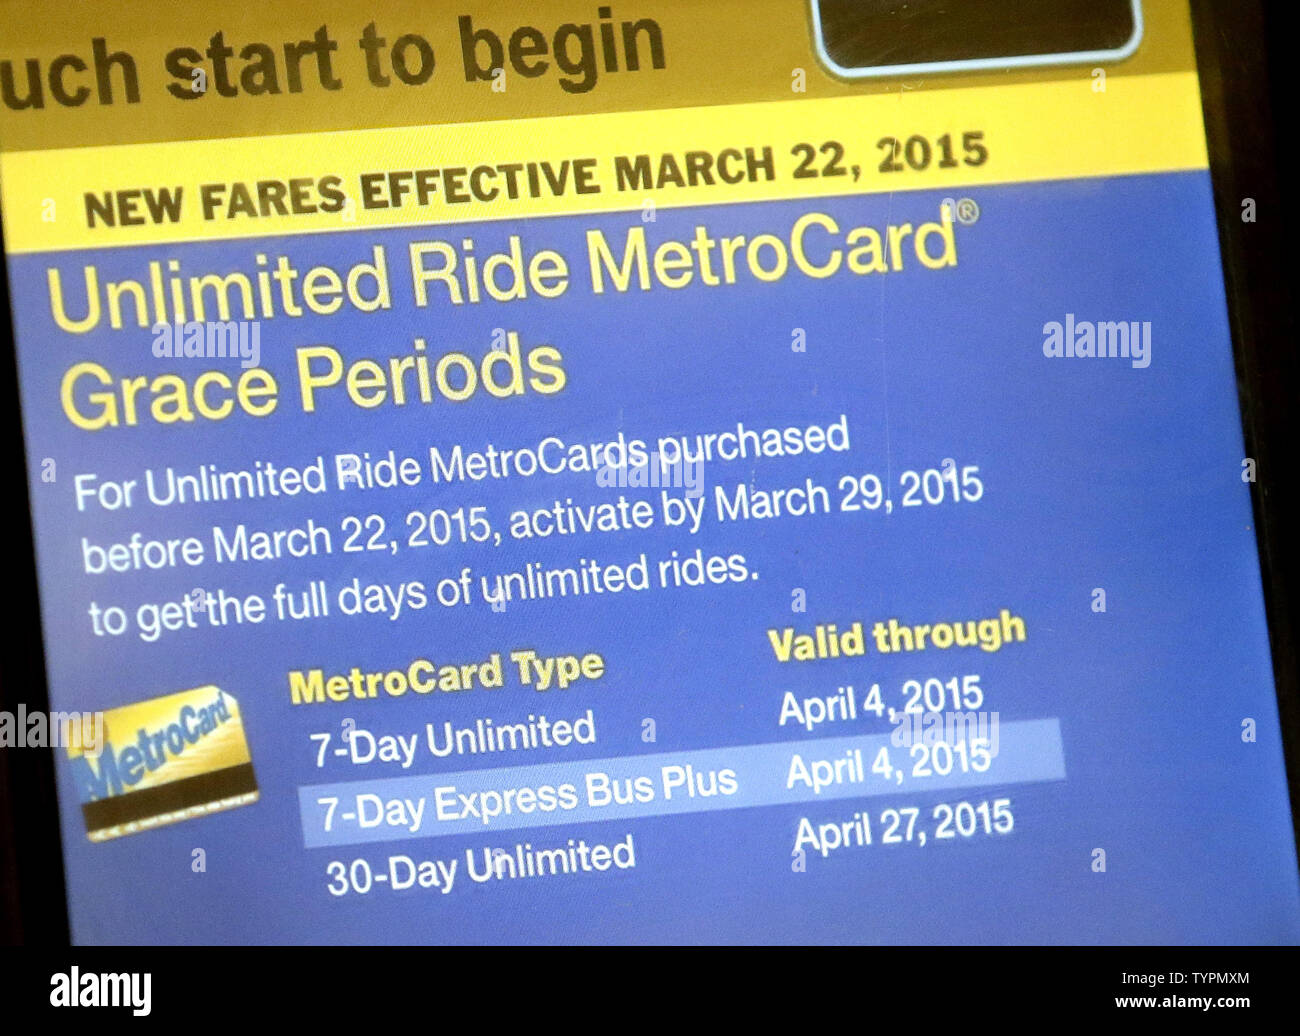 A machine to purchase MetroCard's is in working condition on the Houston Street subway station in New York City on March 23, 2015. Commuters faced higher prices Monday morning after MTA fares went up over the weekend on subways, buses and commuter rails as well as at toll booths. Fare increases kicked in Sunday as part of a series of increases in recent years built into the cash-strapped MTA's budget.    Photo by John Angelillo/UPI - Stock Image